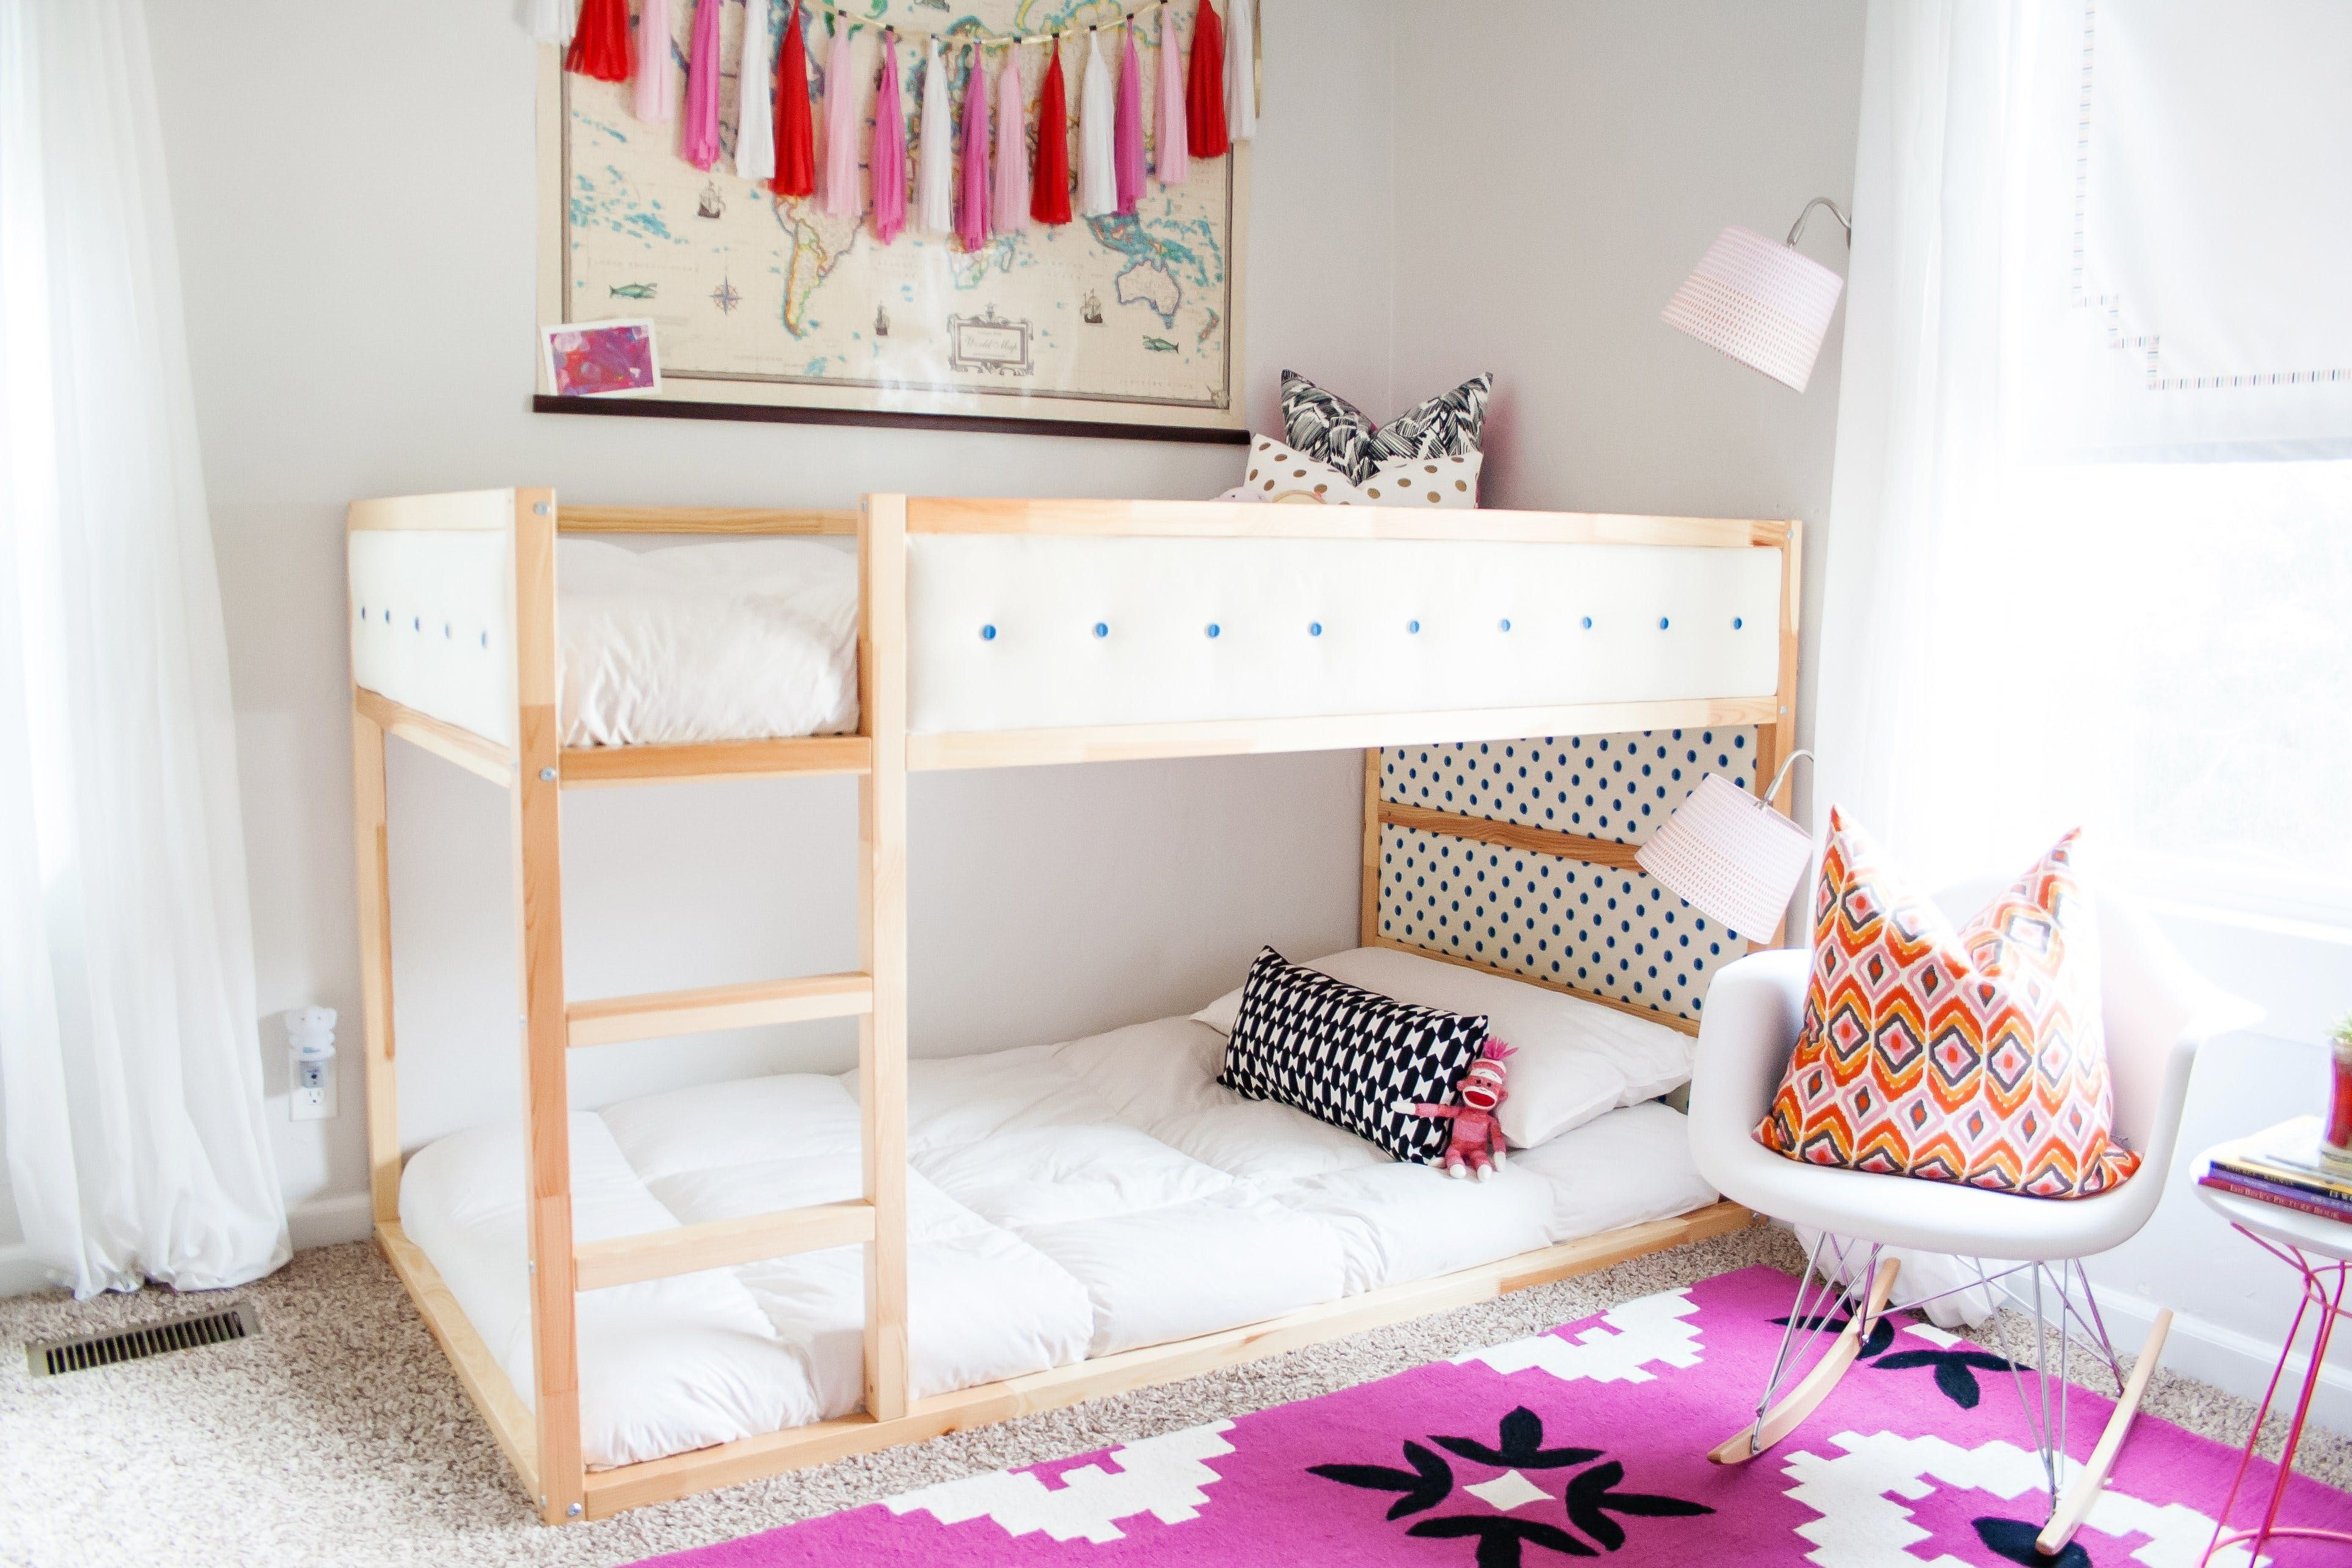 The Endlessly Hackable KURA Bed Ideas for Getting a Whole New Look